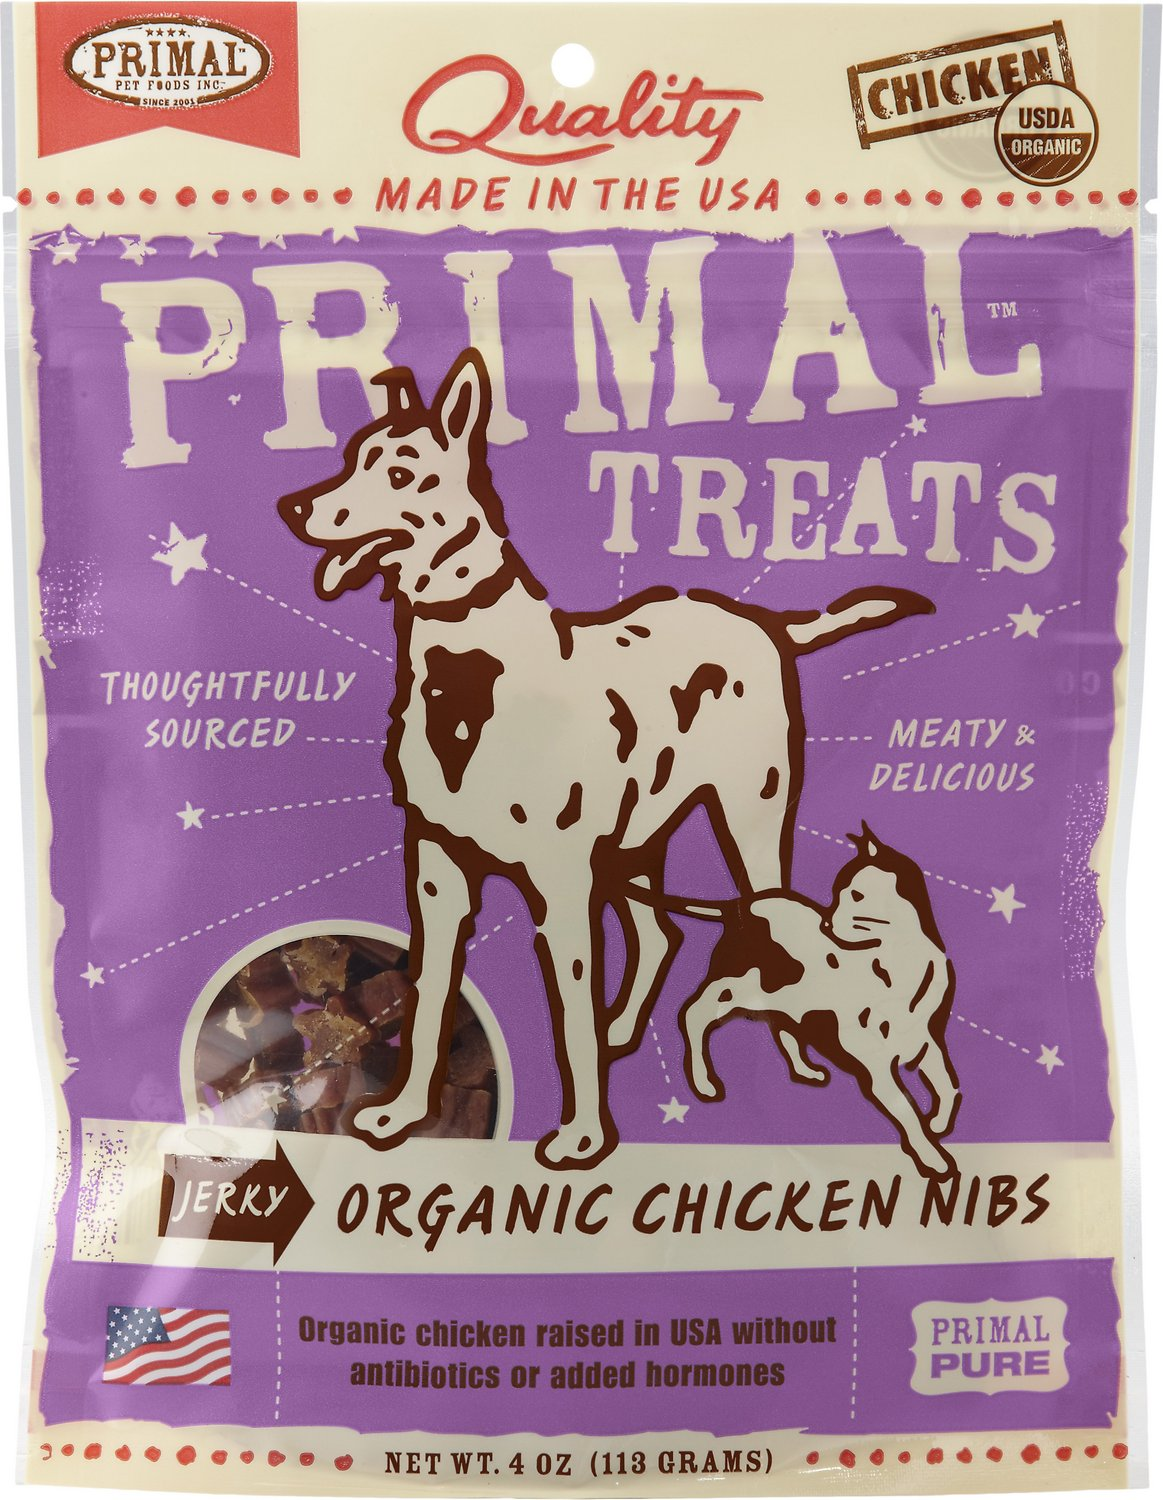 Primal Treats Organic Chicken Nibs Jerky Dog & Cat Treats, 4-oz bag